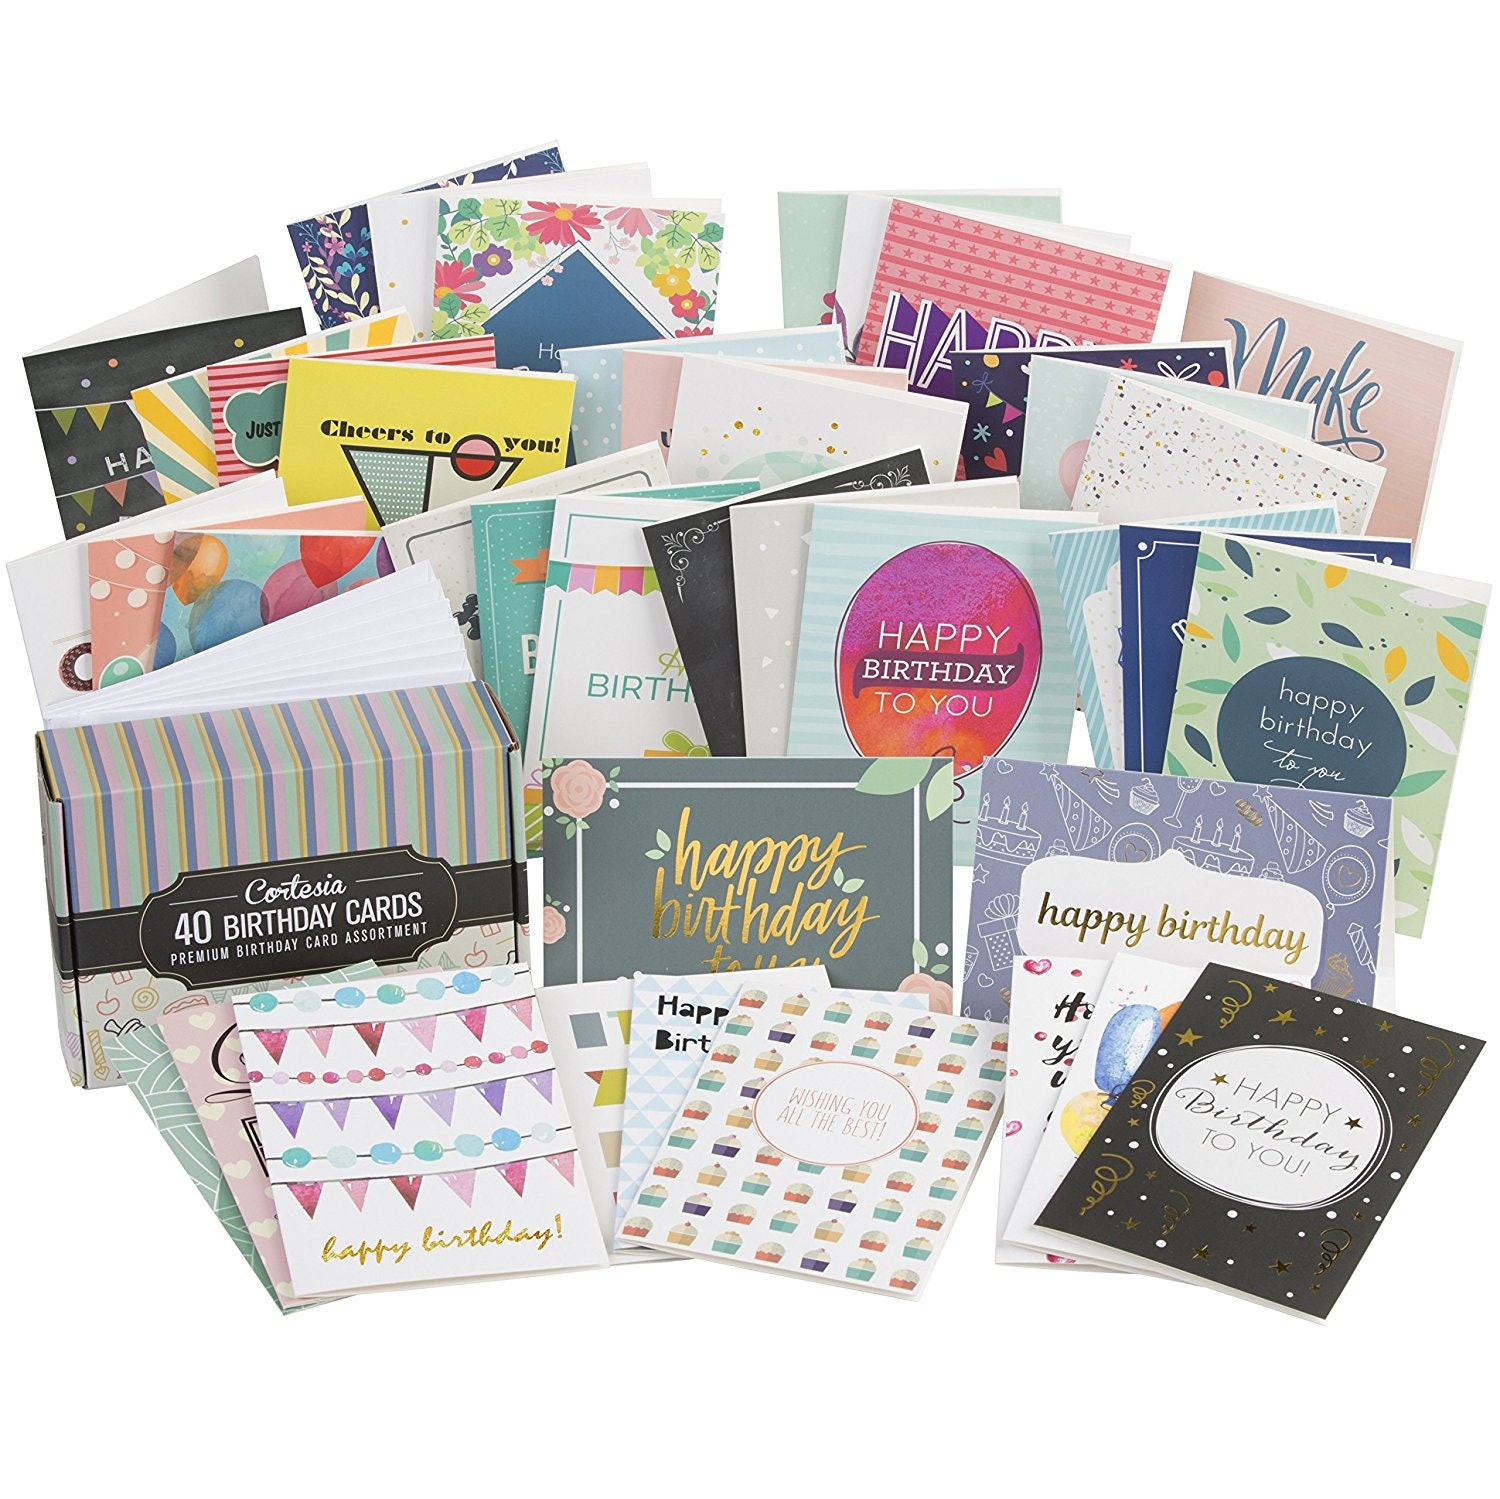 Box of assorted greeting cards images greetings card design simple greeting card assortment packs images greetings card design simple m4hsunfo